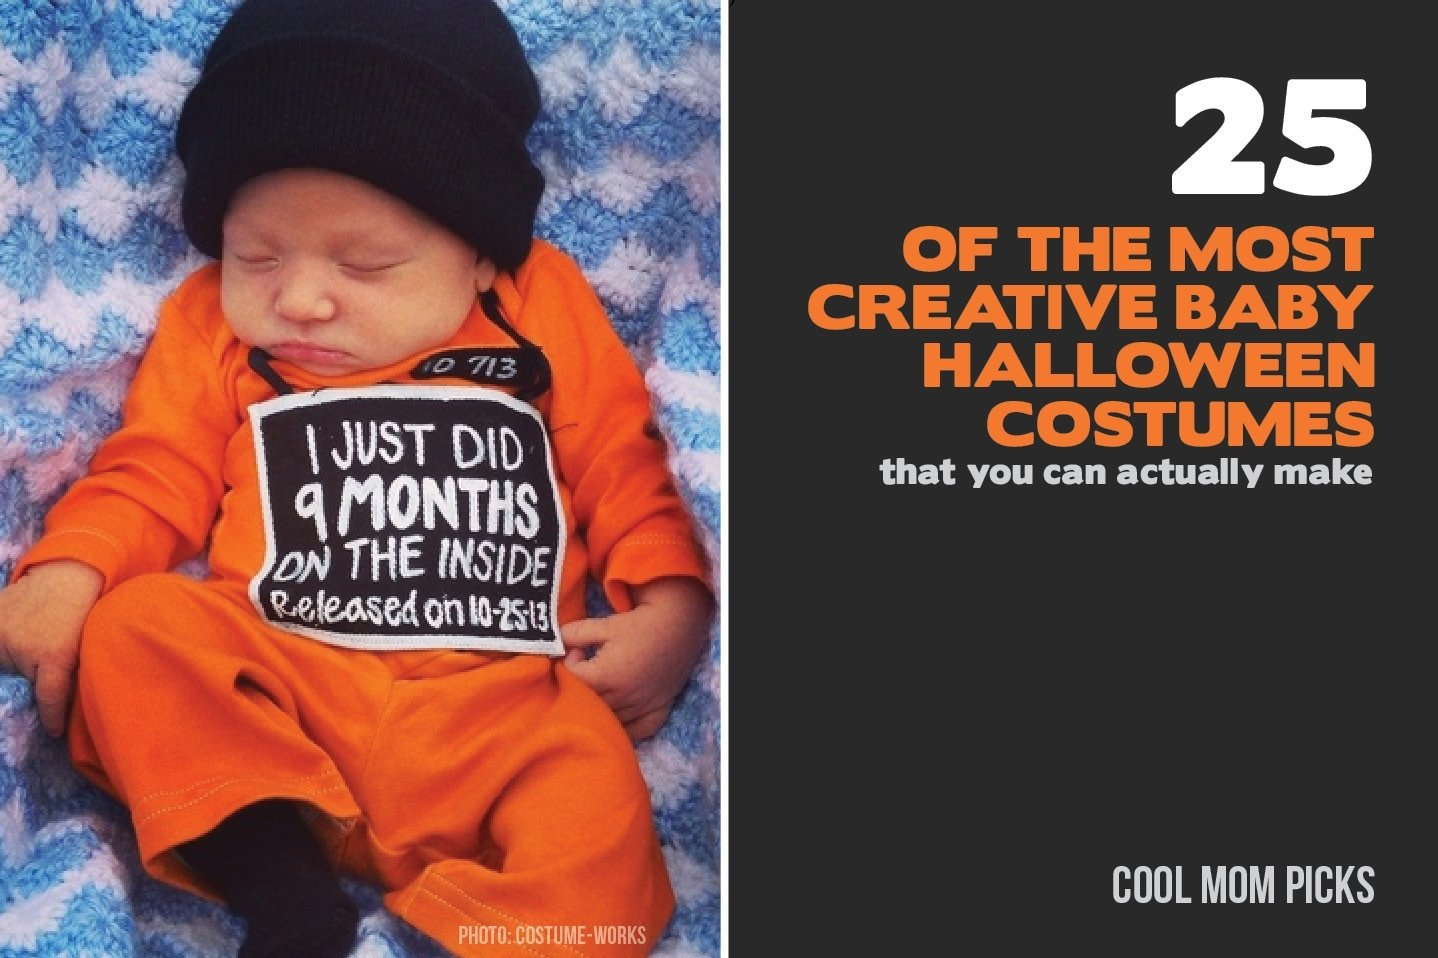 10 Famous Unique Funny Halloween Costume Ideas 25 of the most adorably creative baby costumes you can diy 3 2020